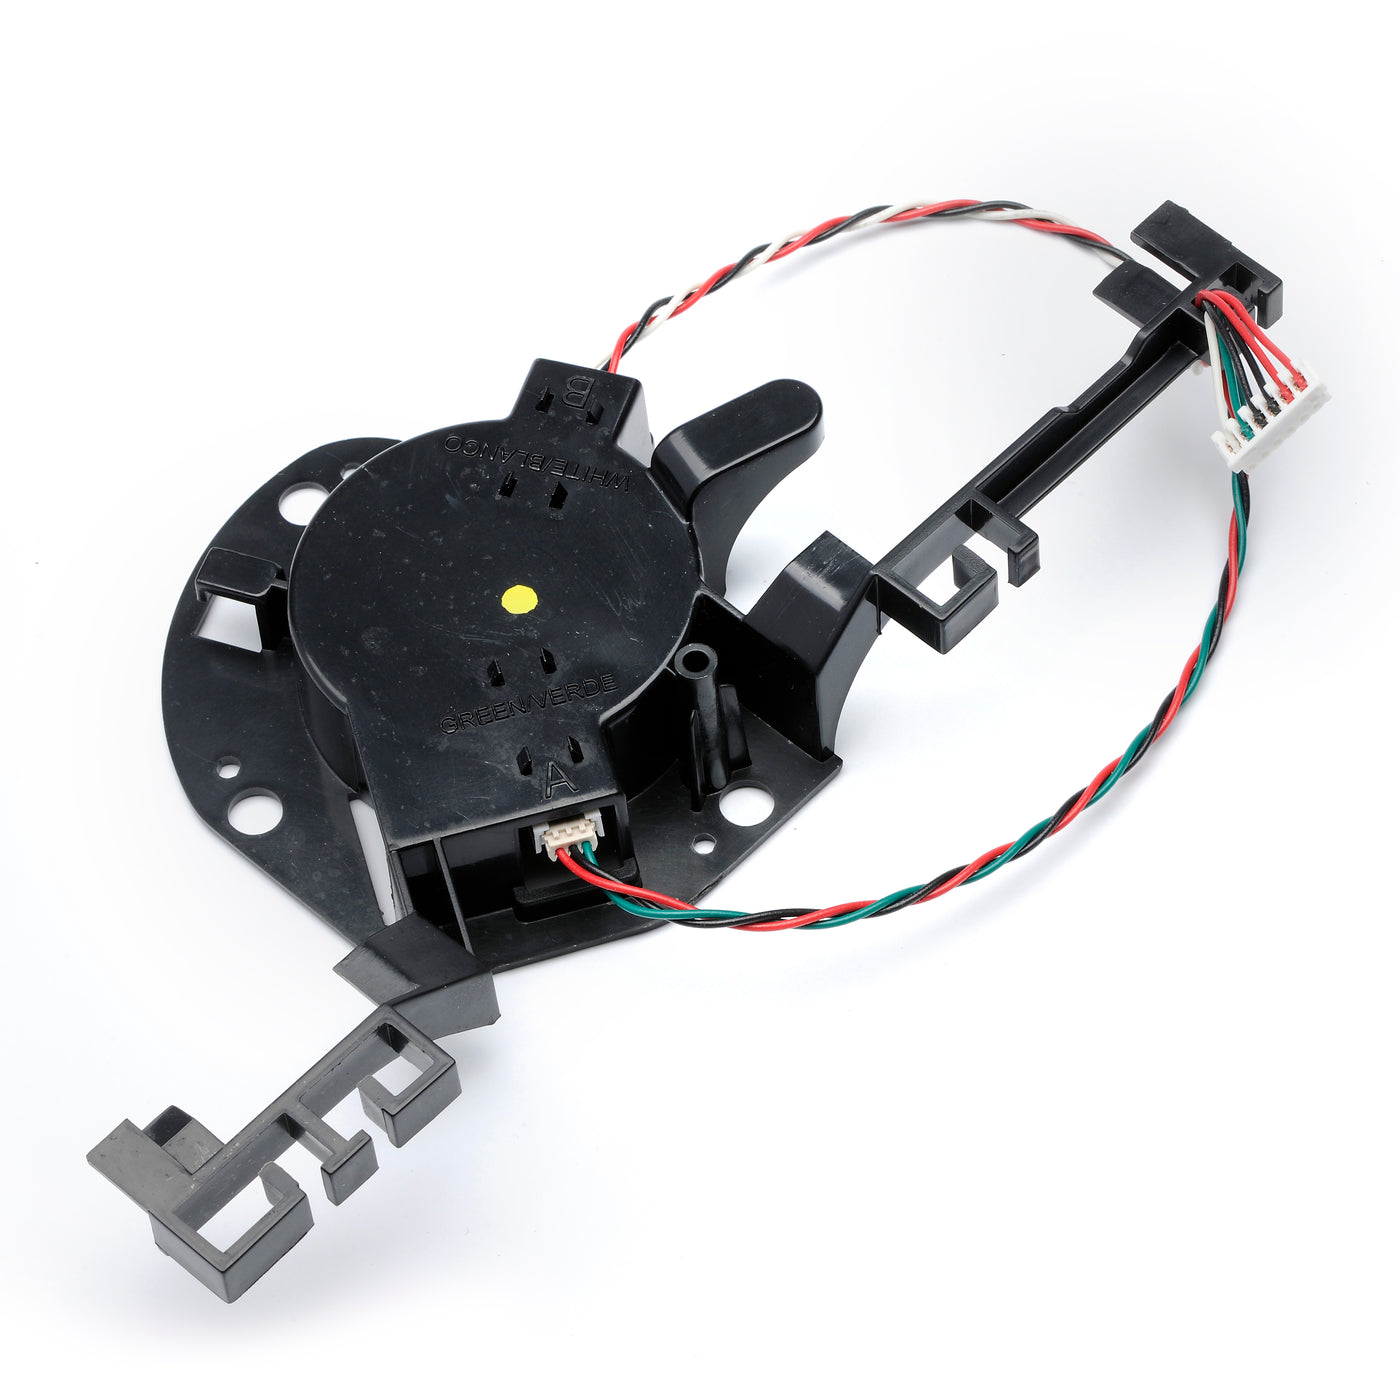 Optical Encoder (RPM Sensor) 39272R.S- Belt/Chain Drive Models ,